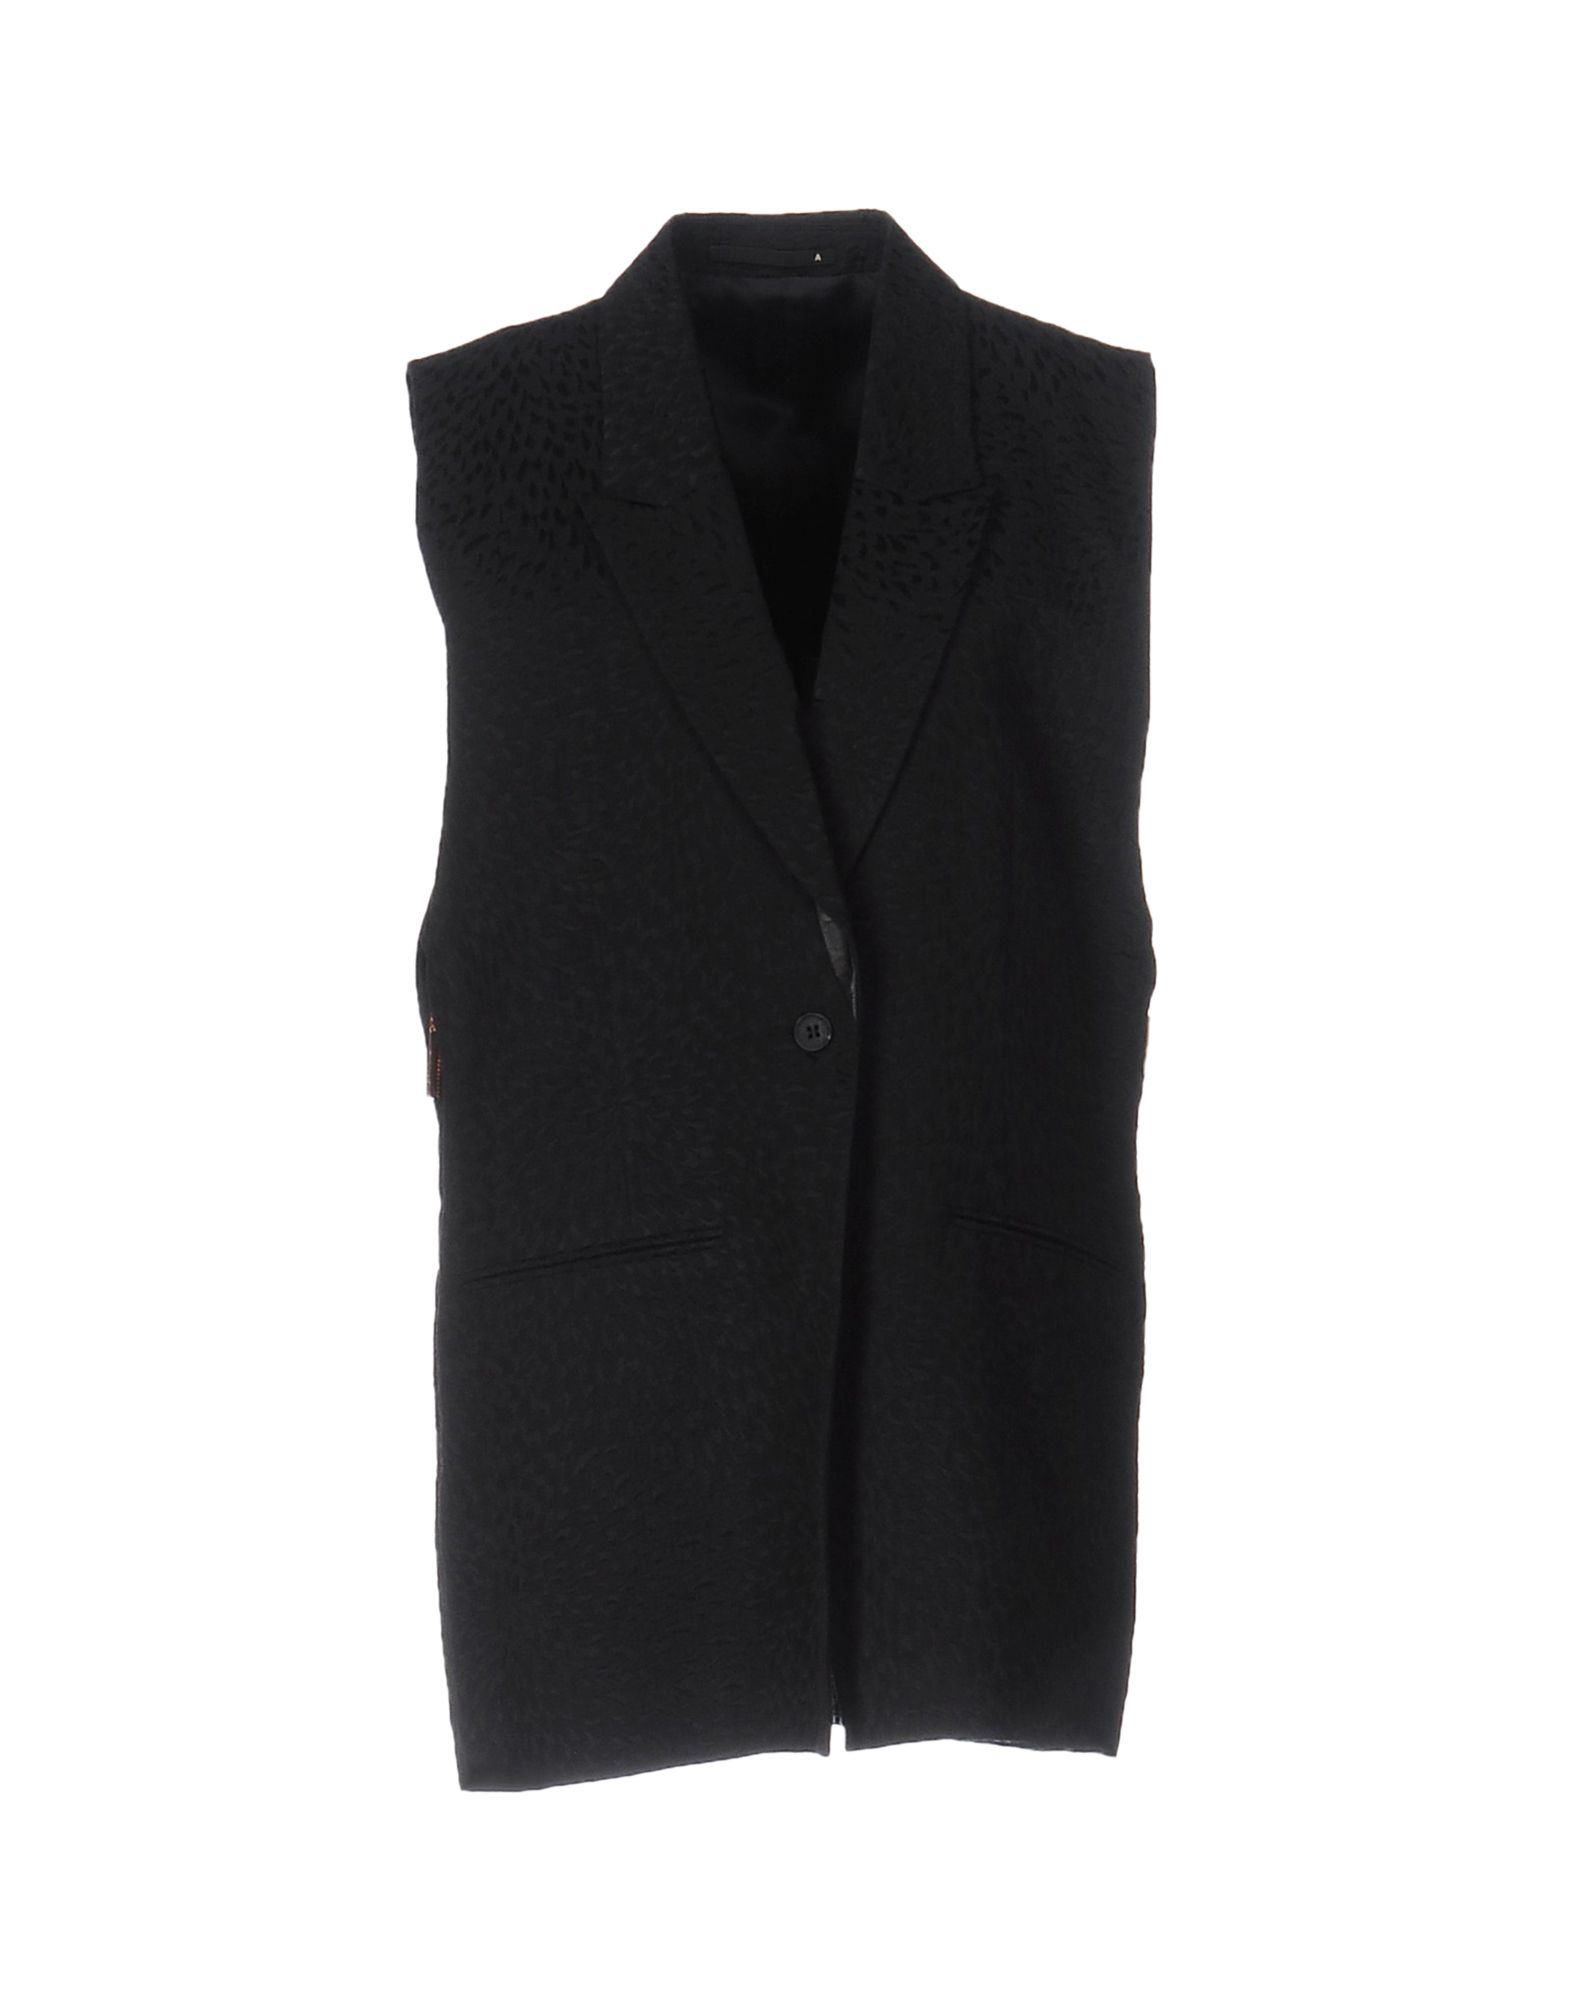 AVELON Blazer in Black